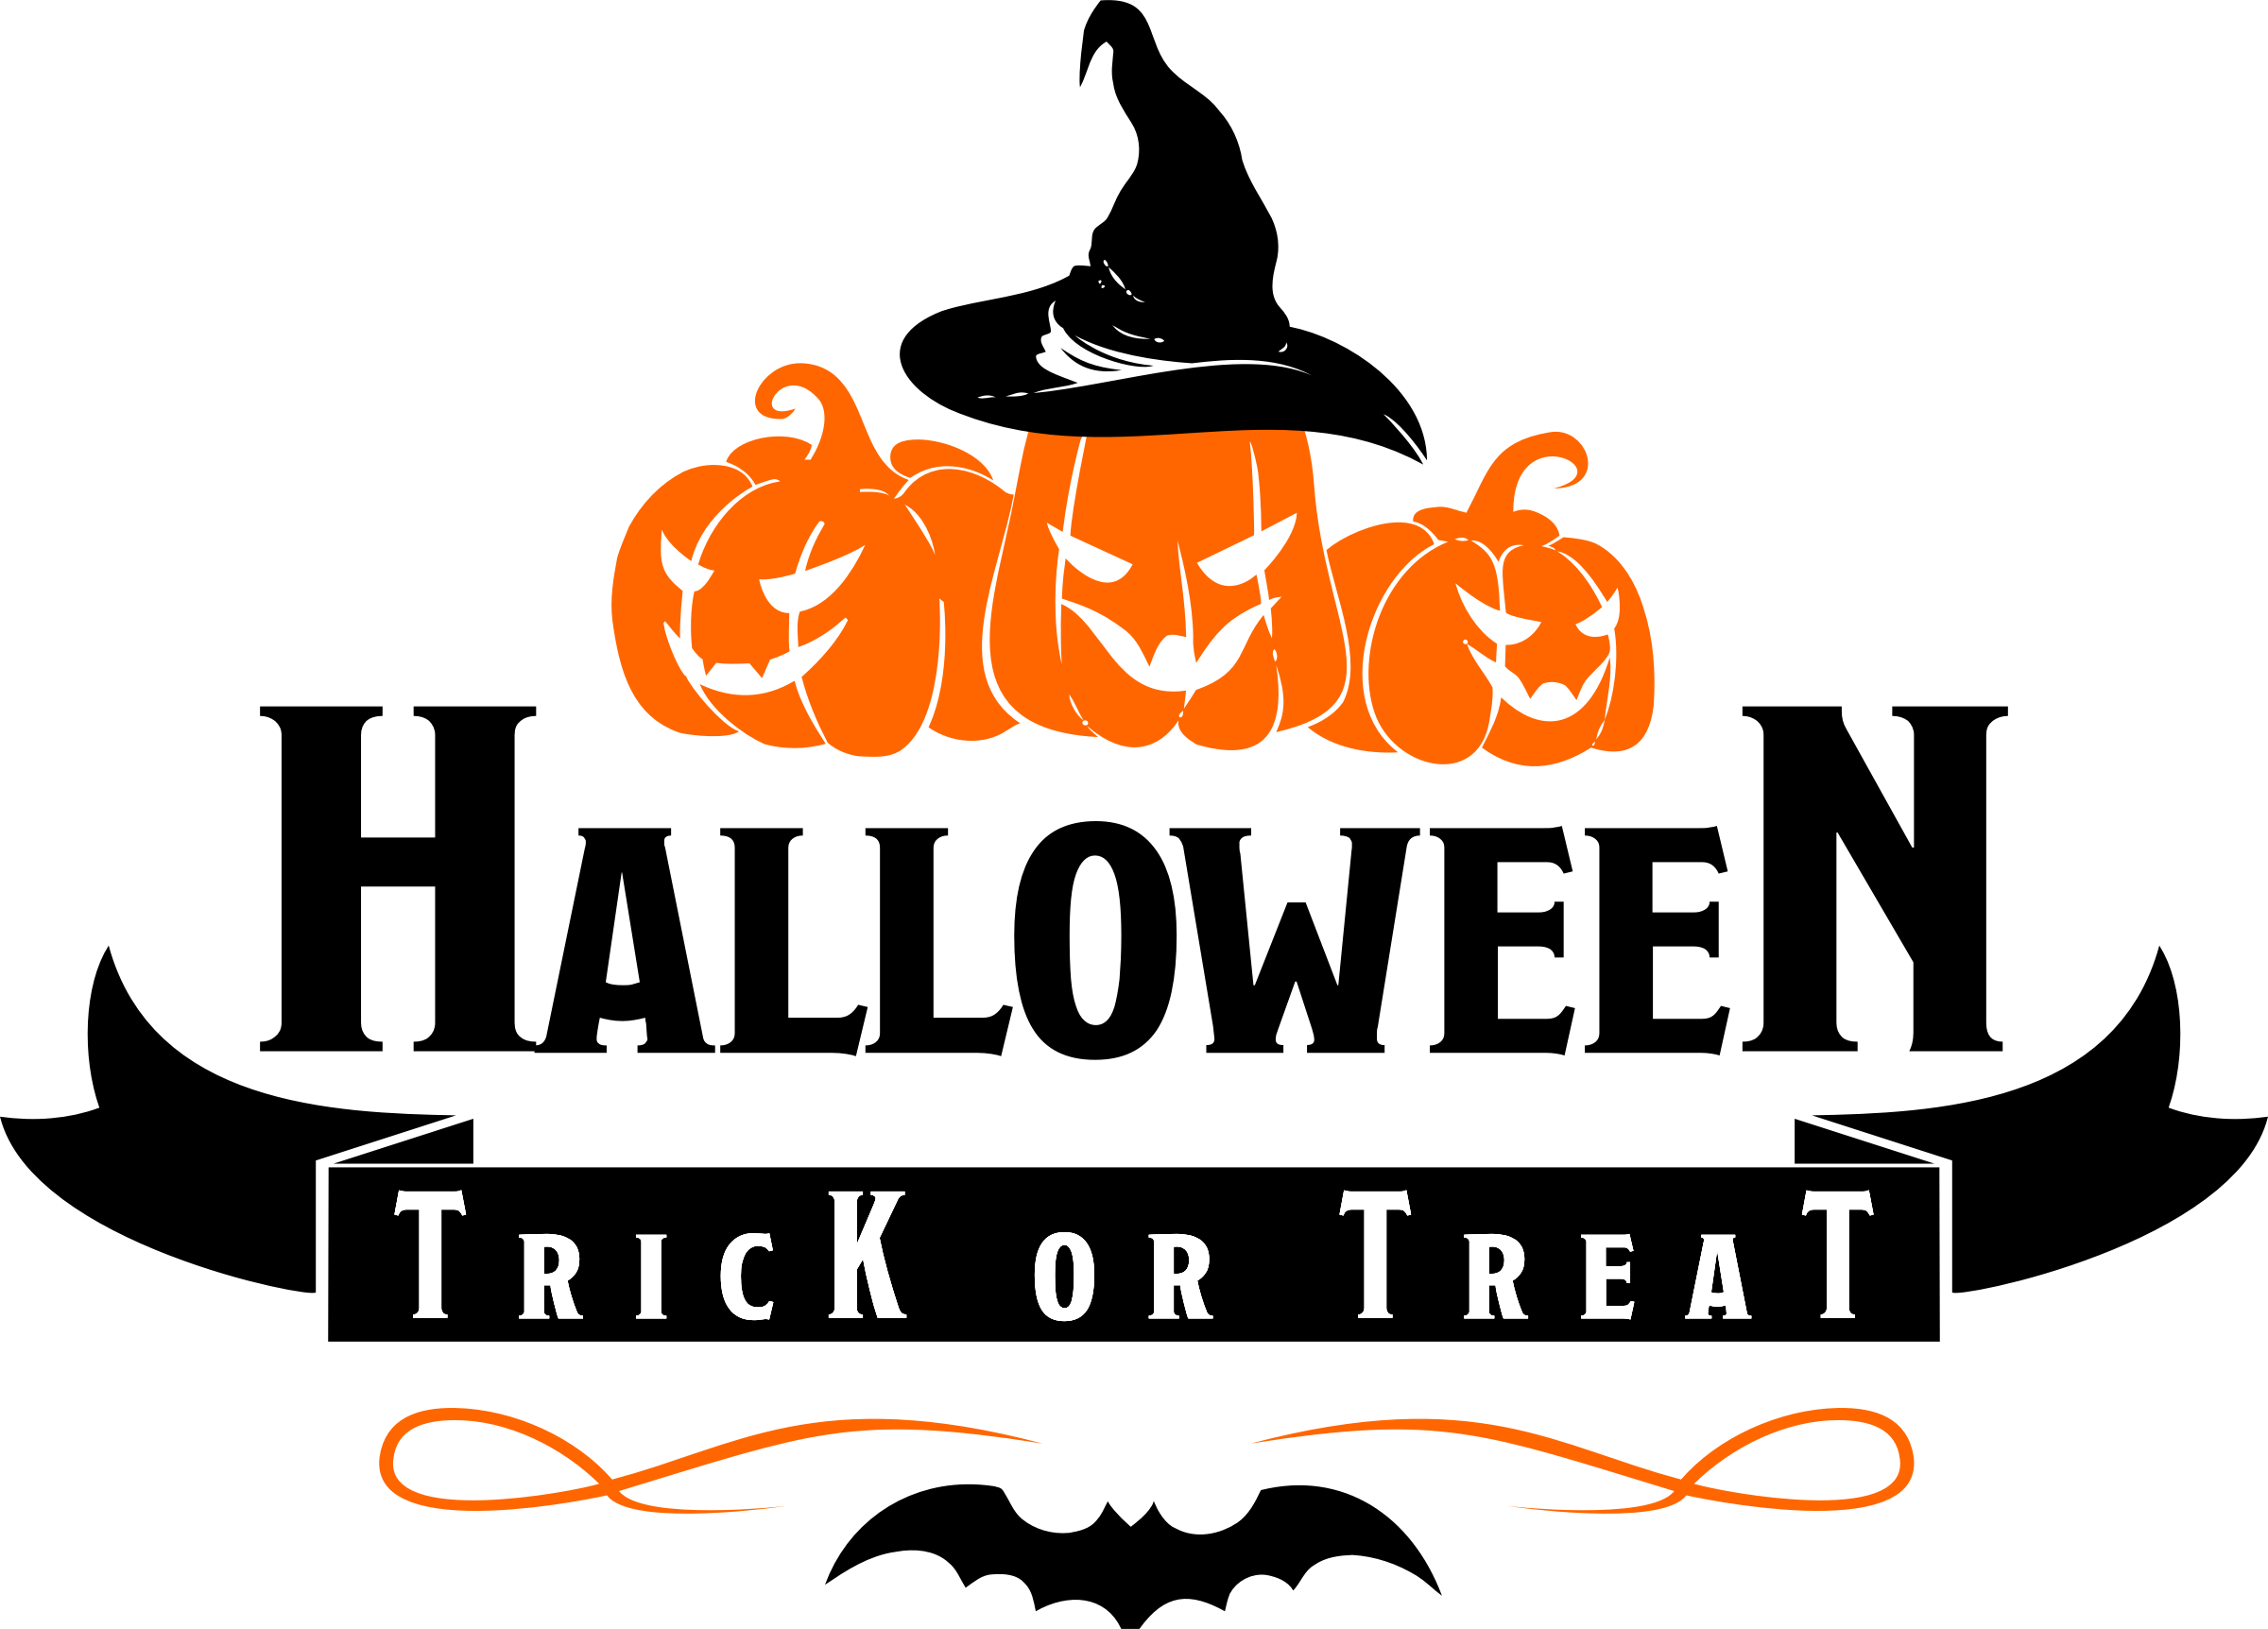 Halloween - Trick or Treat Logo by uroesch